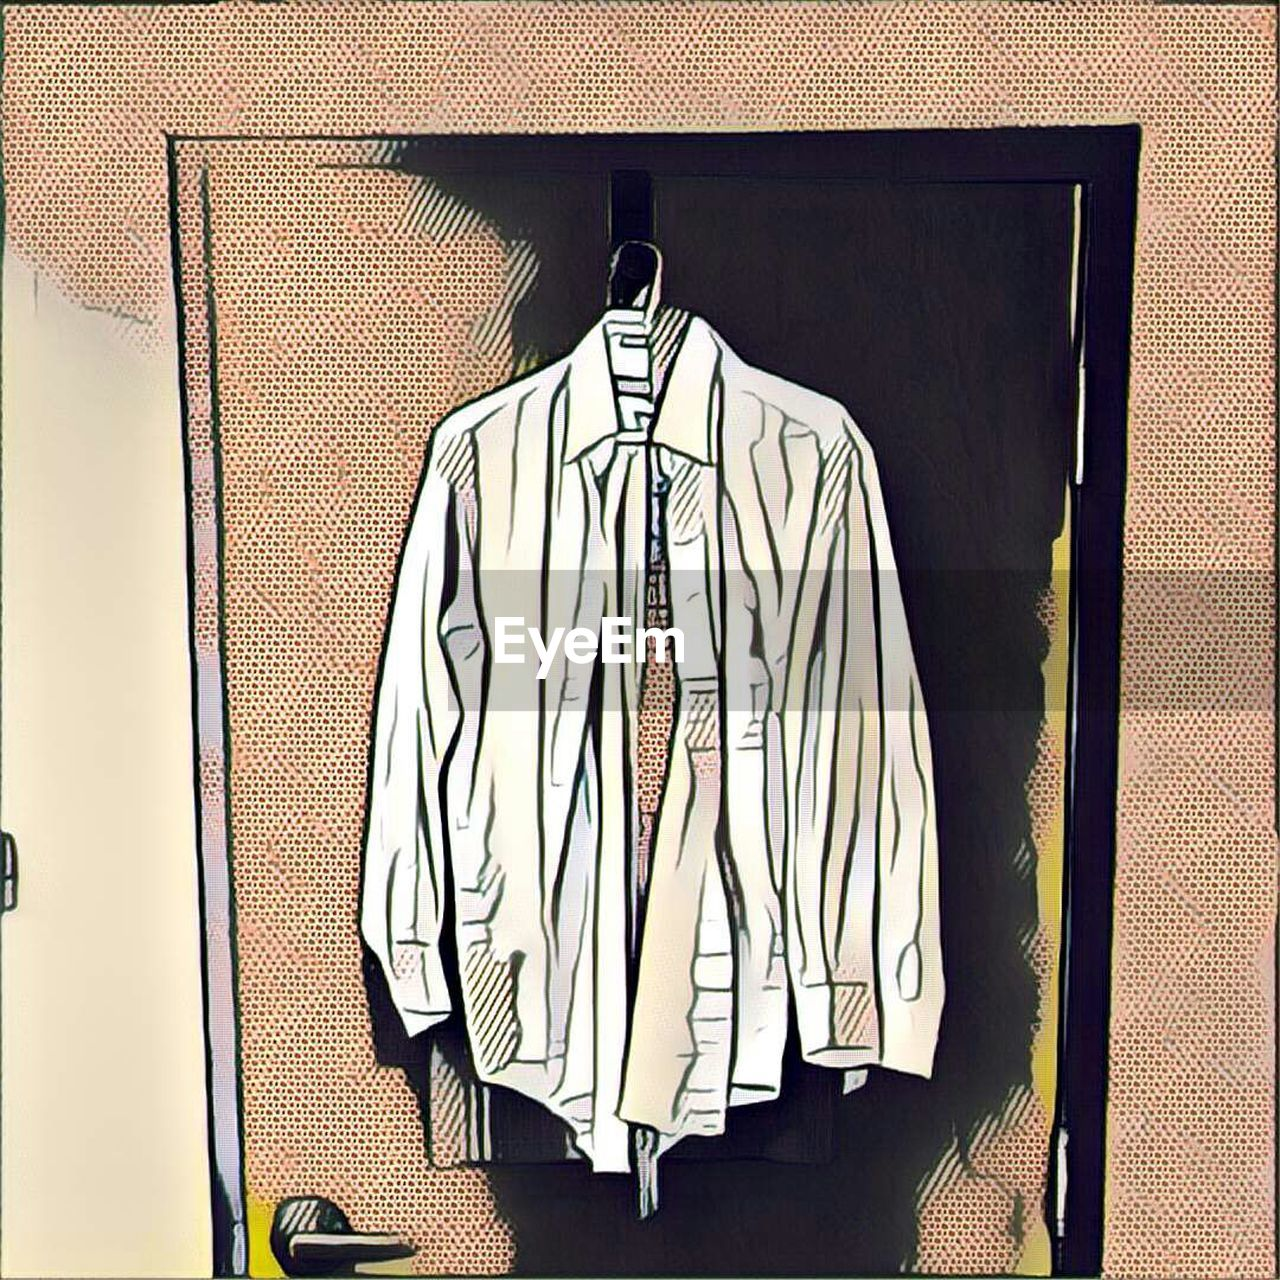 hanging, coathanger, no people, indoors, neat, clothing, variation, fashion, home interior, choice, large group of objects, day, close-up